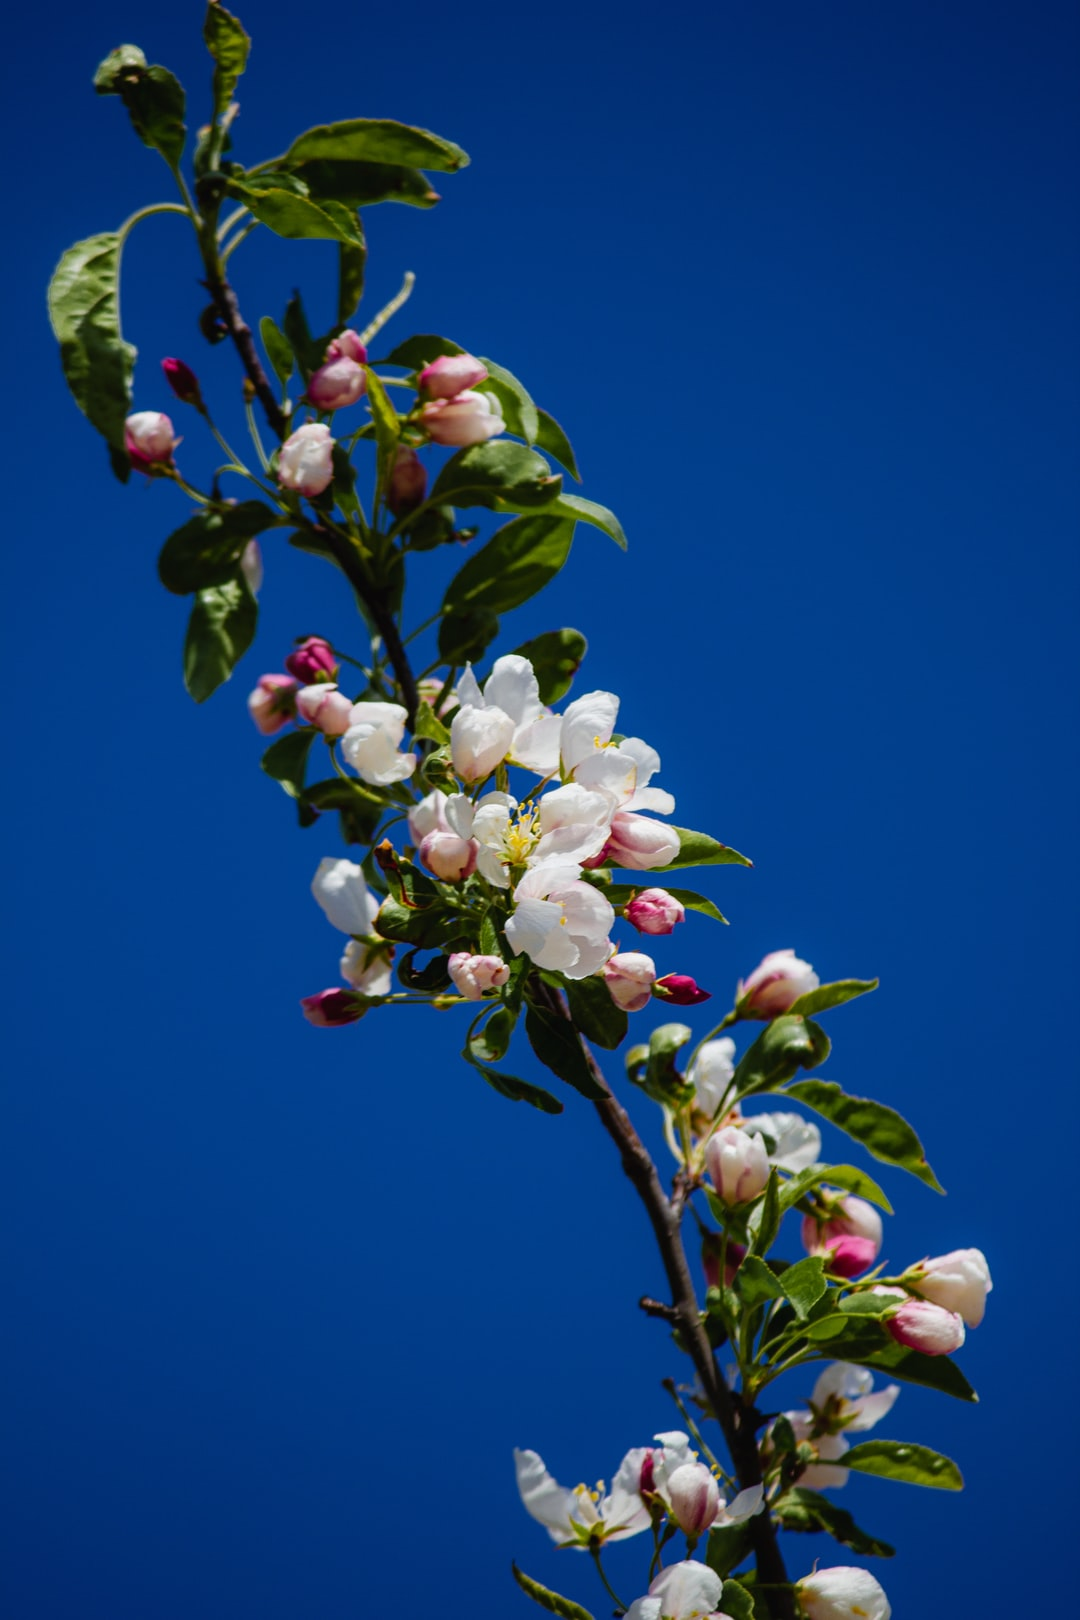 White and pink crabapple blossoms against a blue sky in the springtime